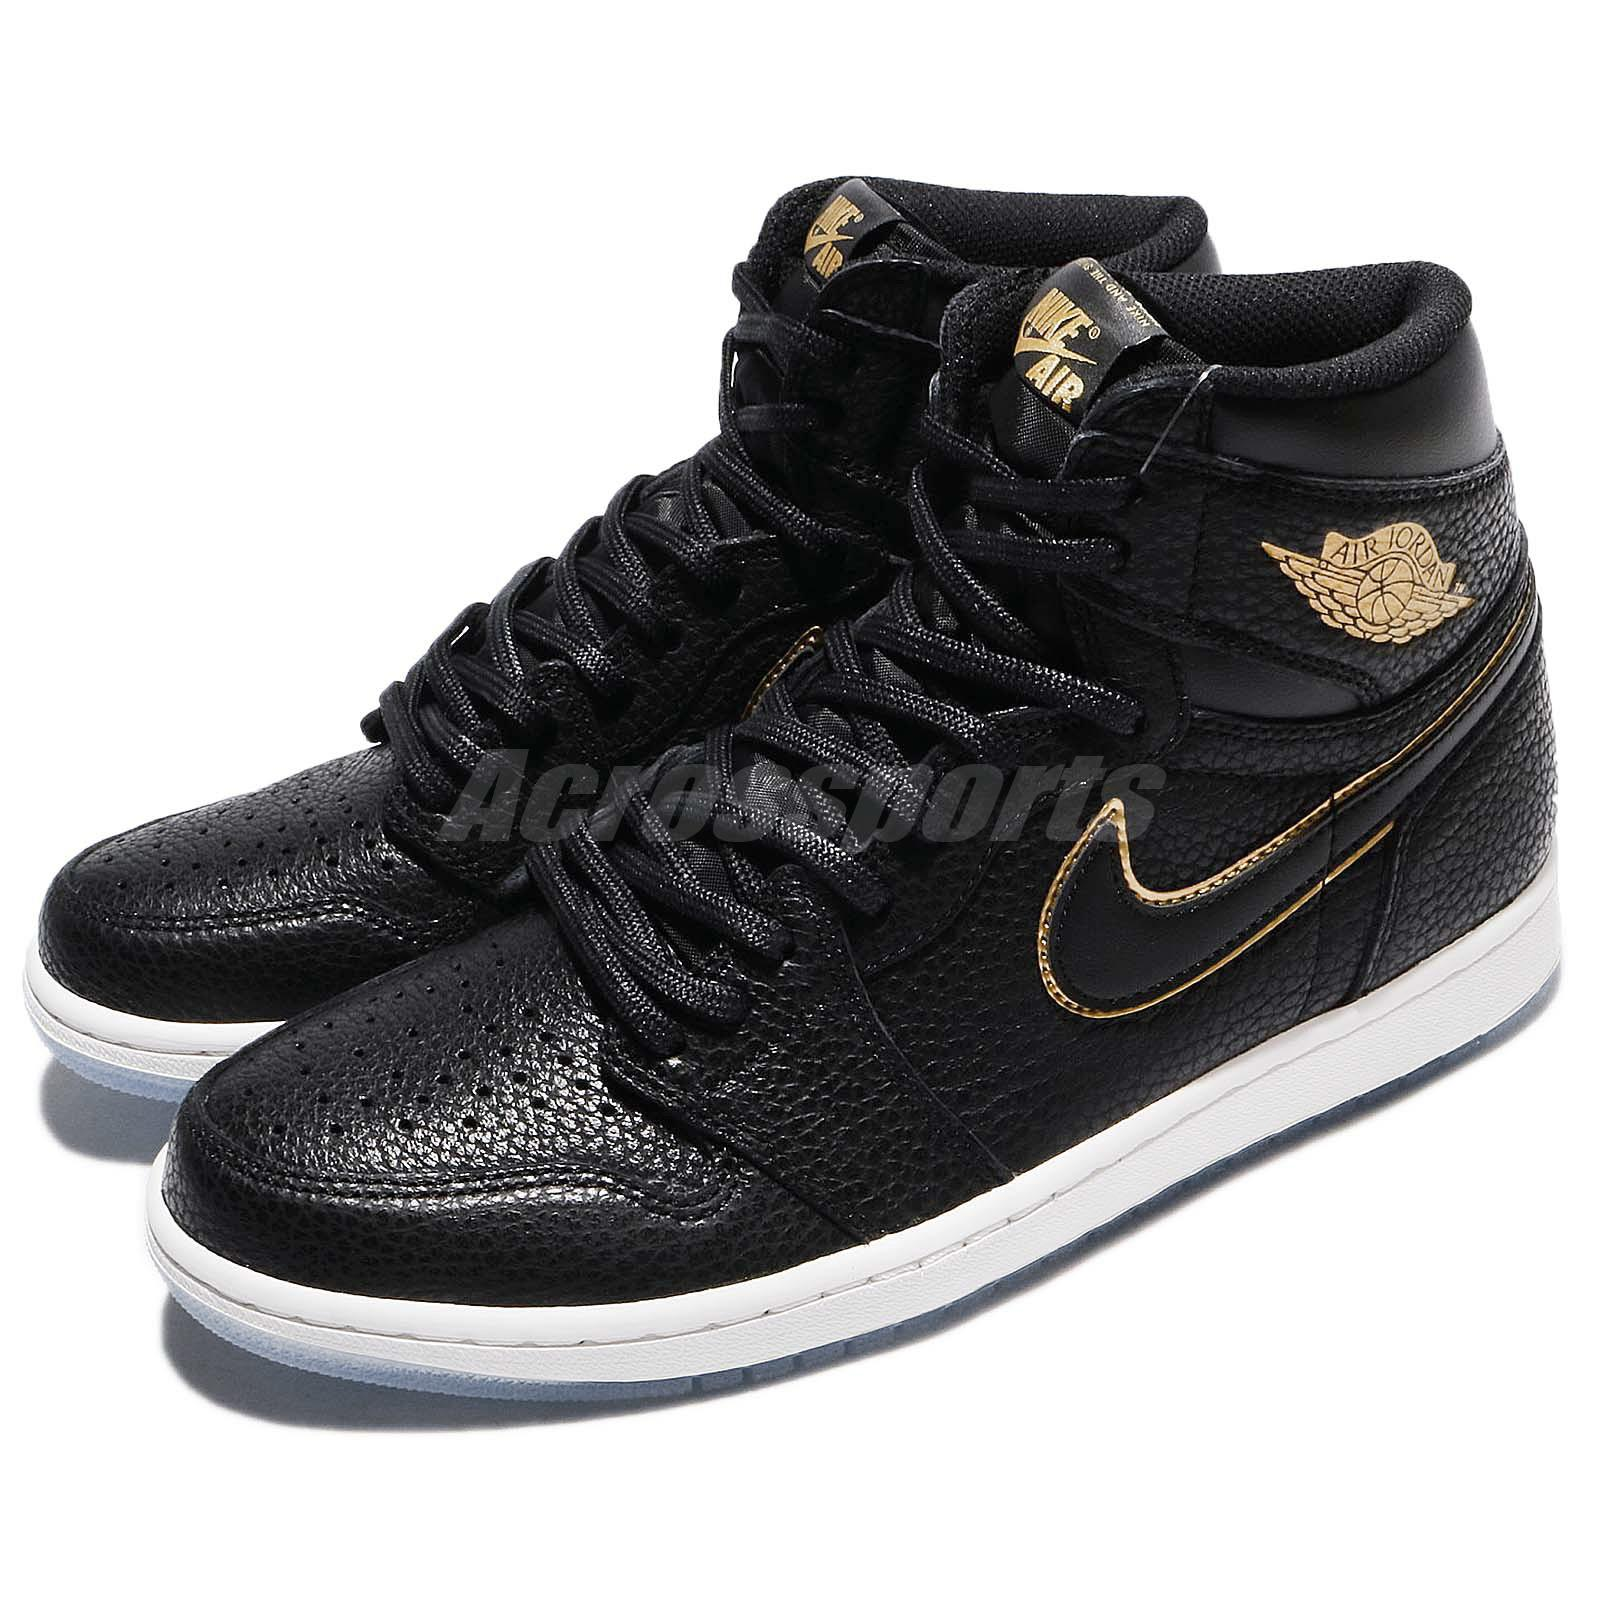 1485434ddcd6 Details about Nike Air Jordan 1 Retro High OG LA All Star City Of Flight  Black AJ1 555088-031